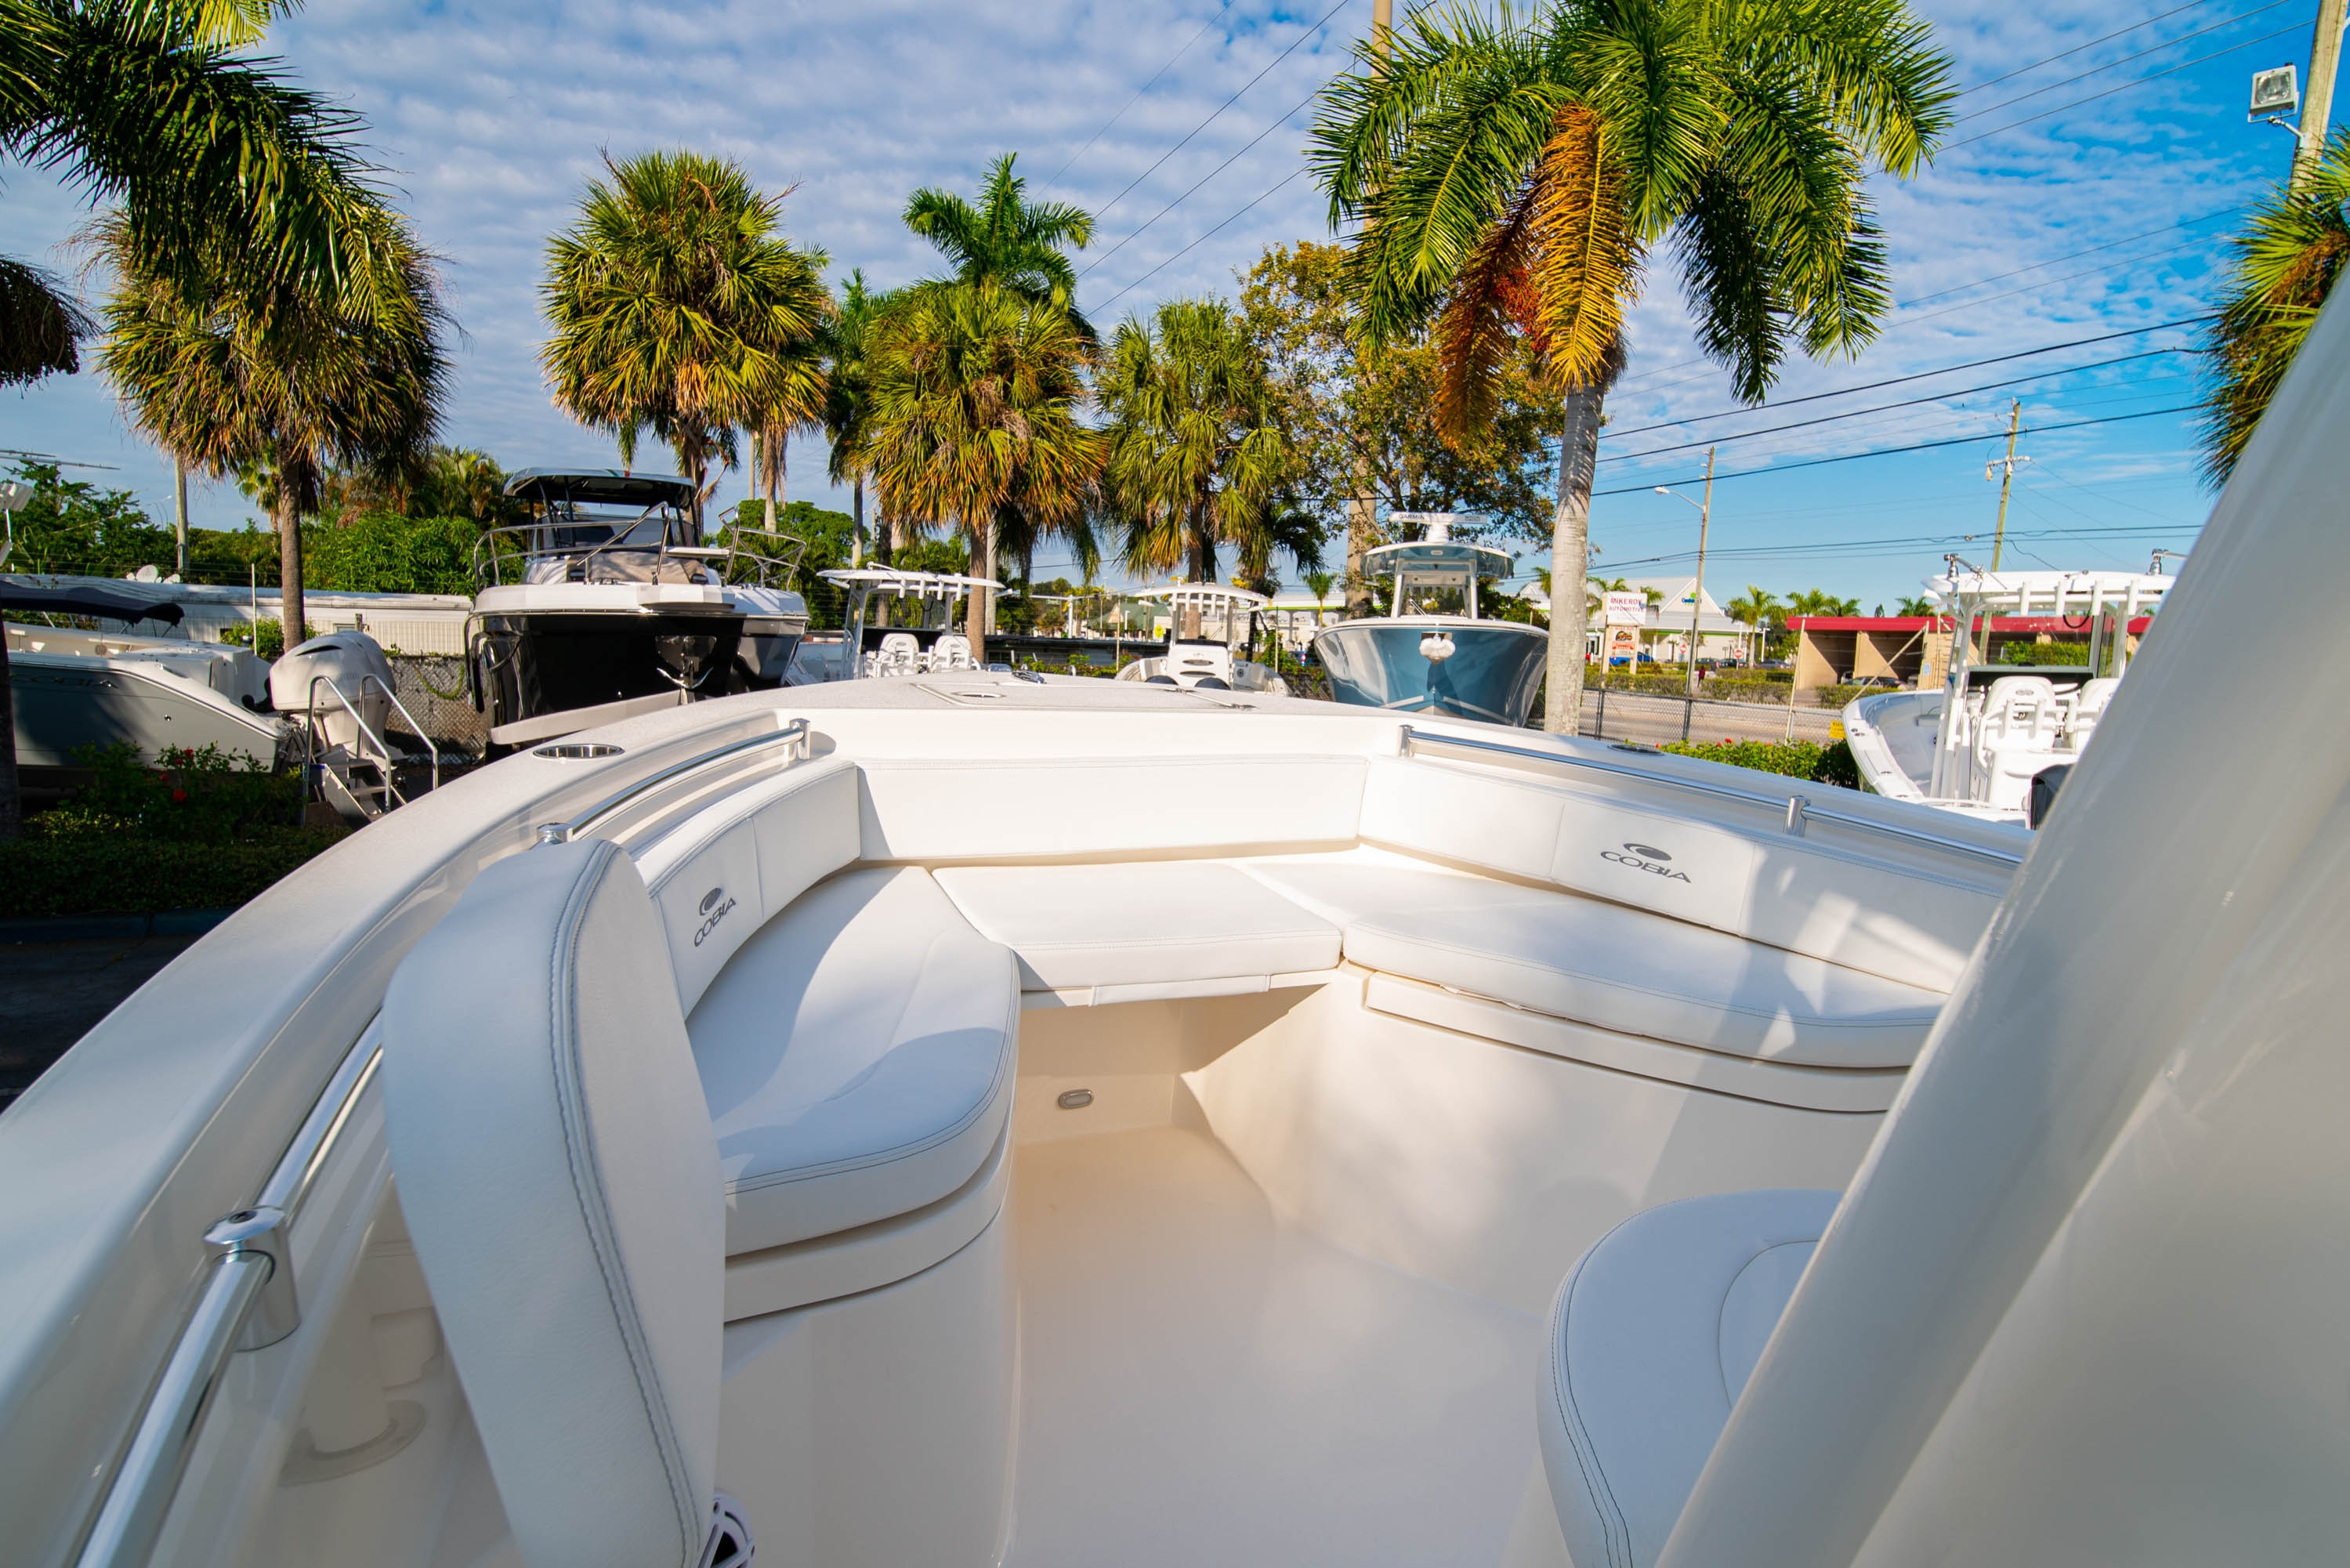 Thumbnail 34 for New 2020 Cobia 220 CC boat for sale in West Palm Beach, FL